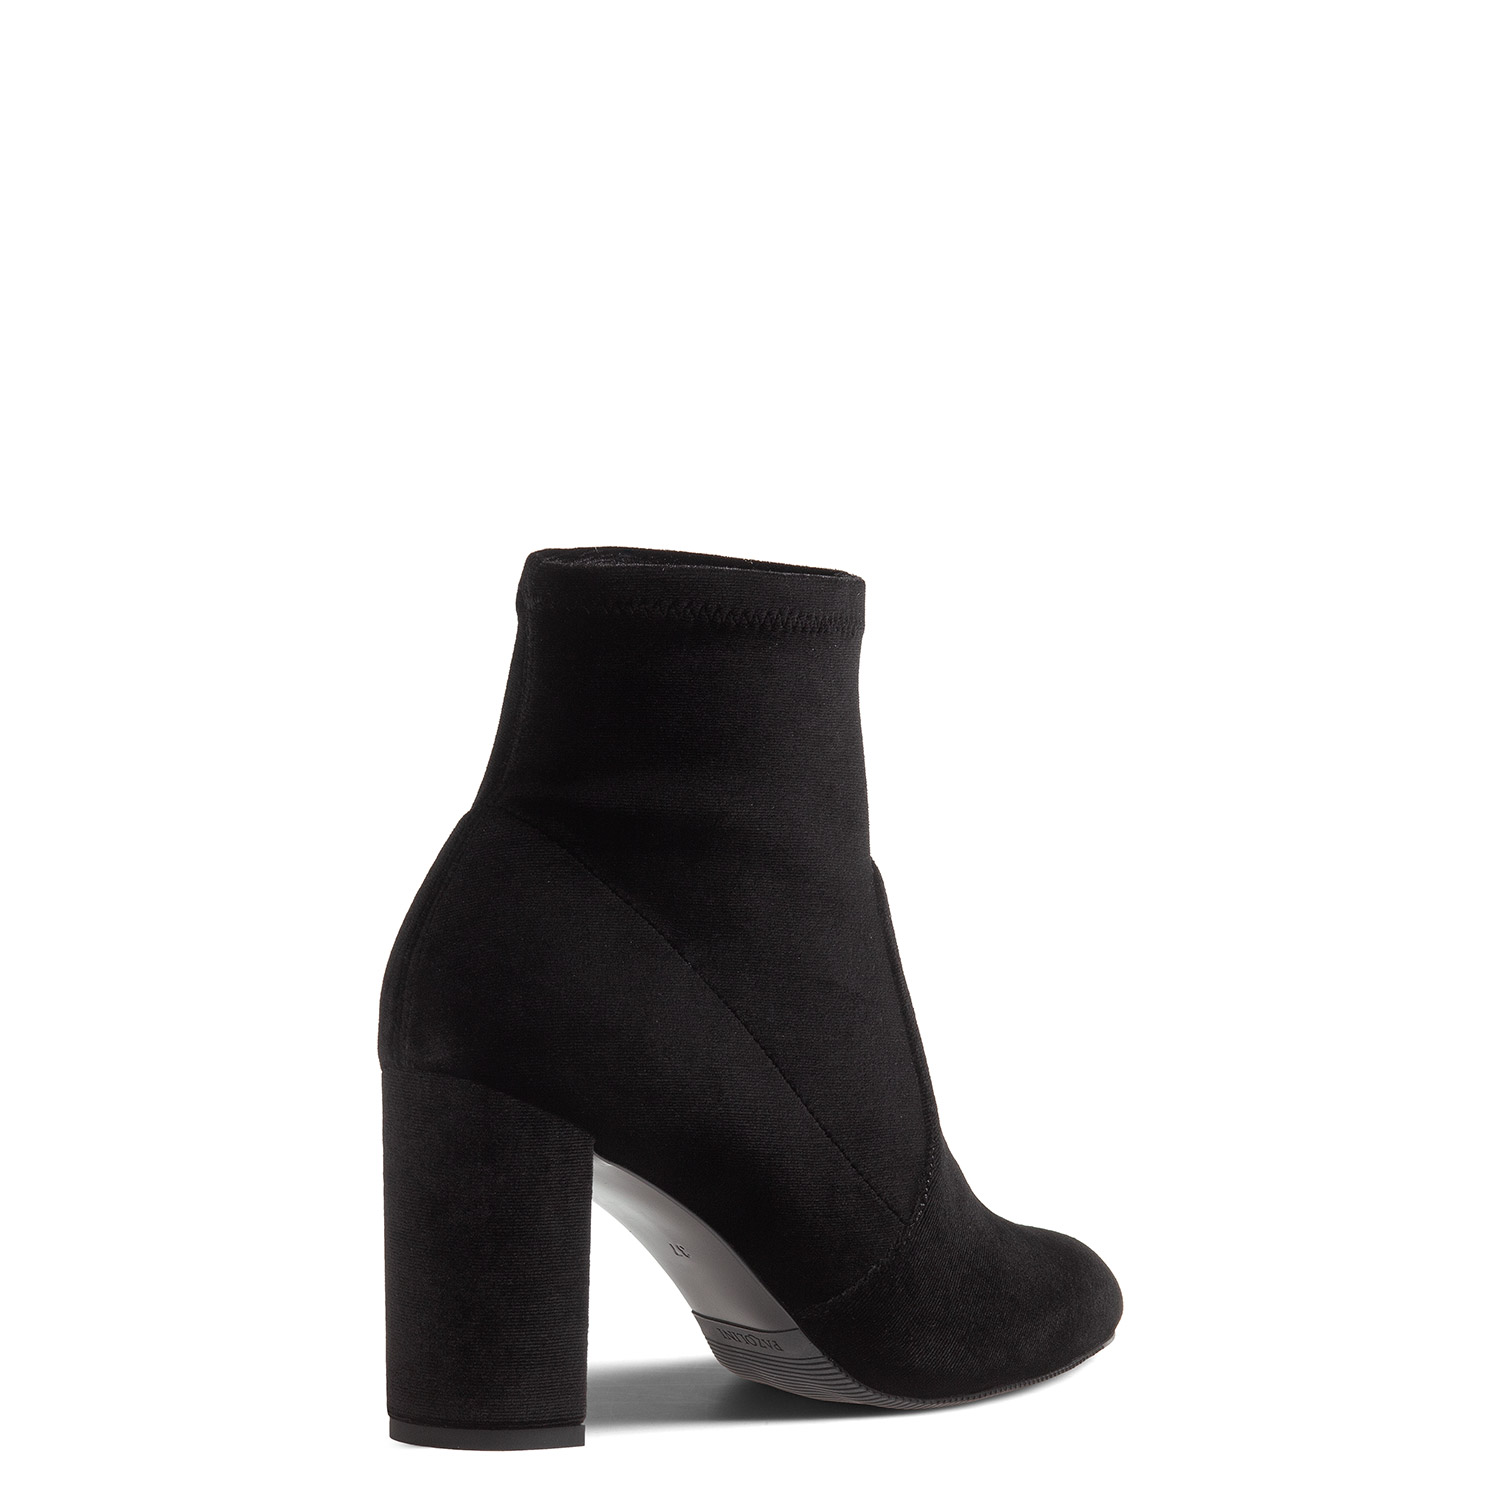 Women's ankle boots PAZOLINI WN-CNN4-1